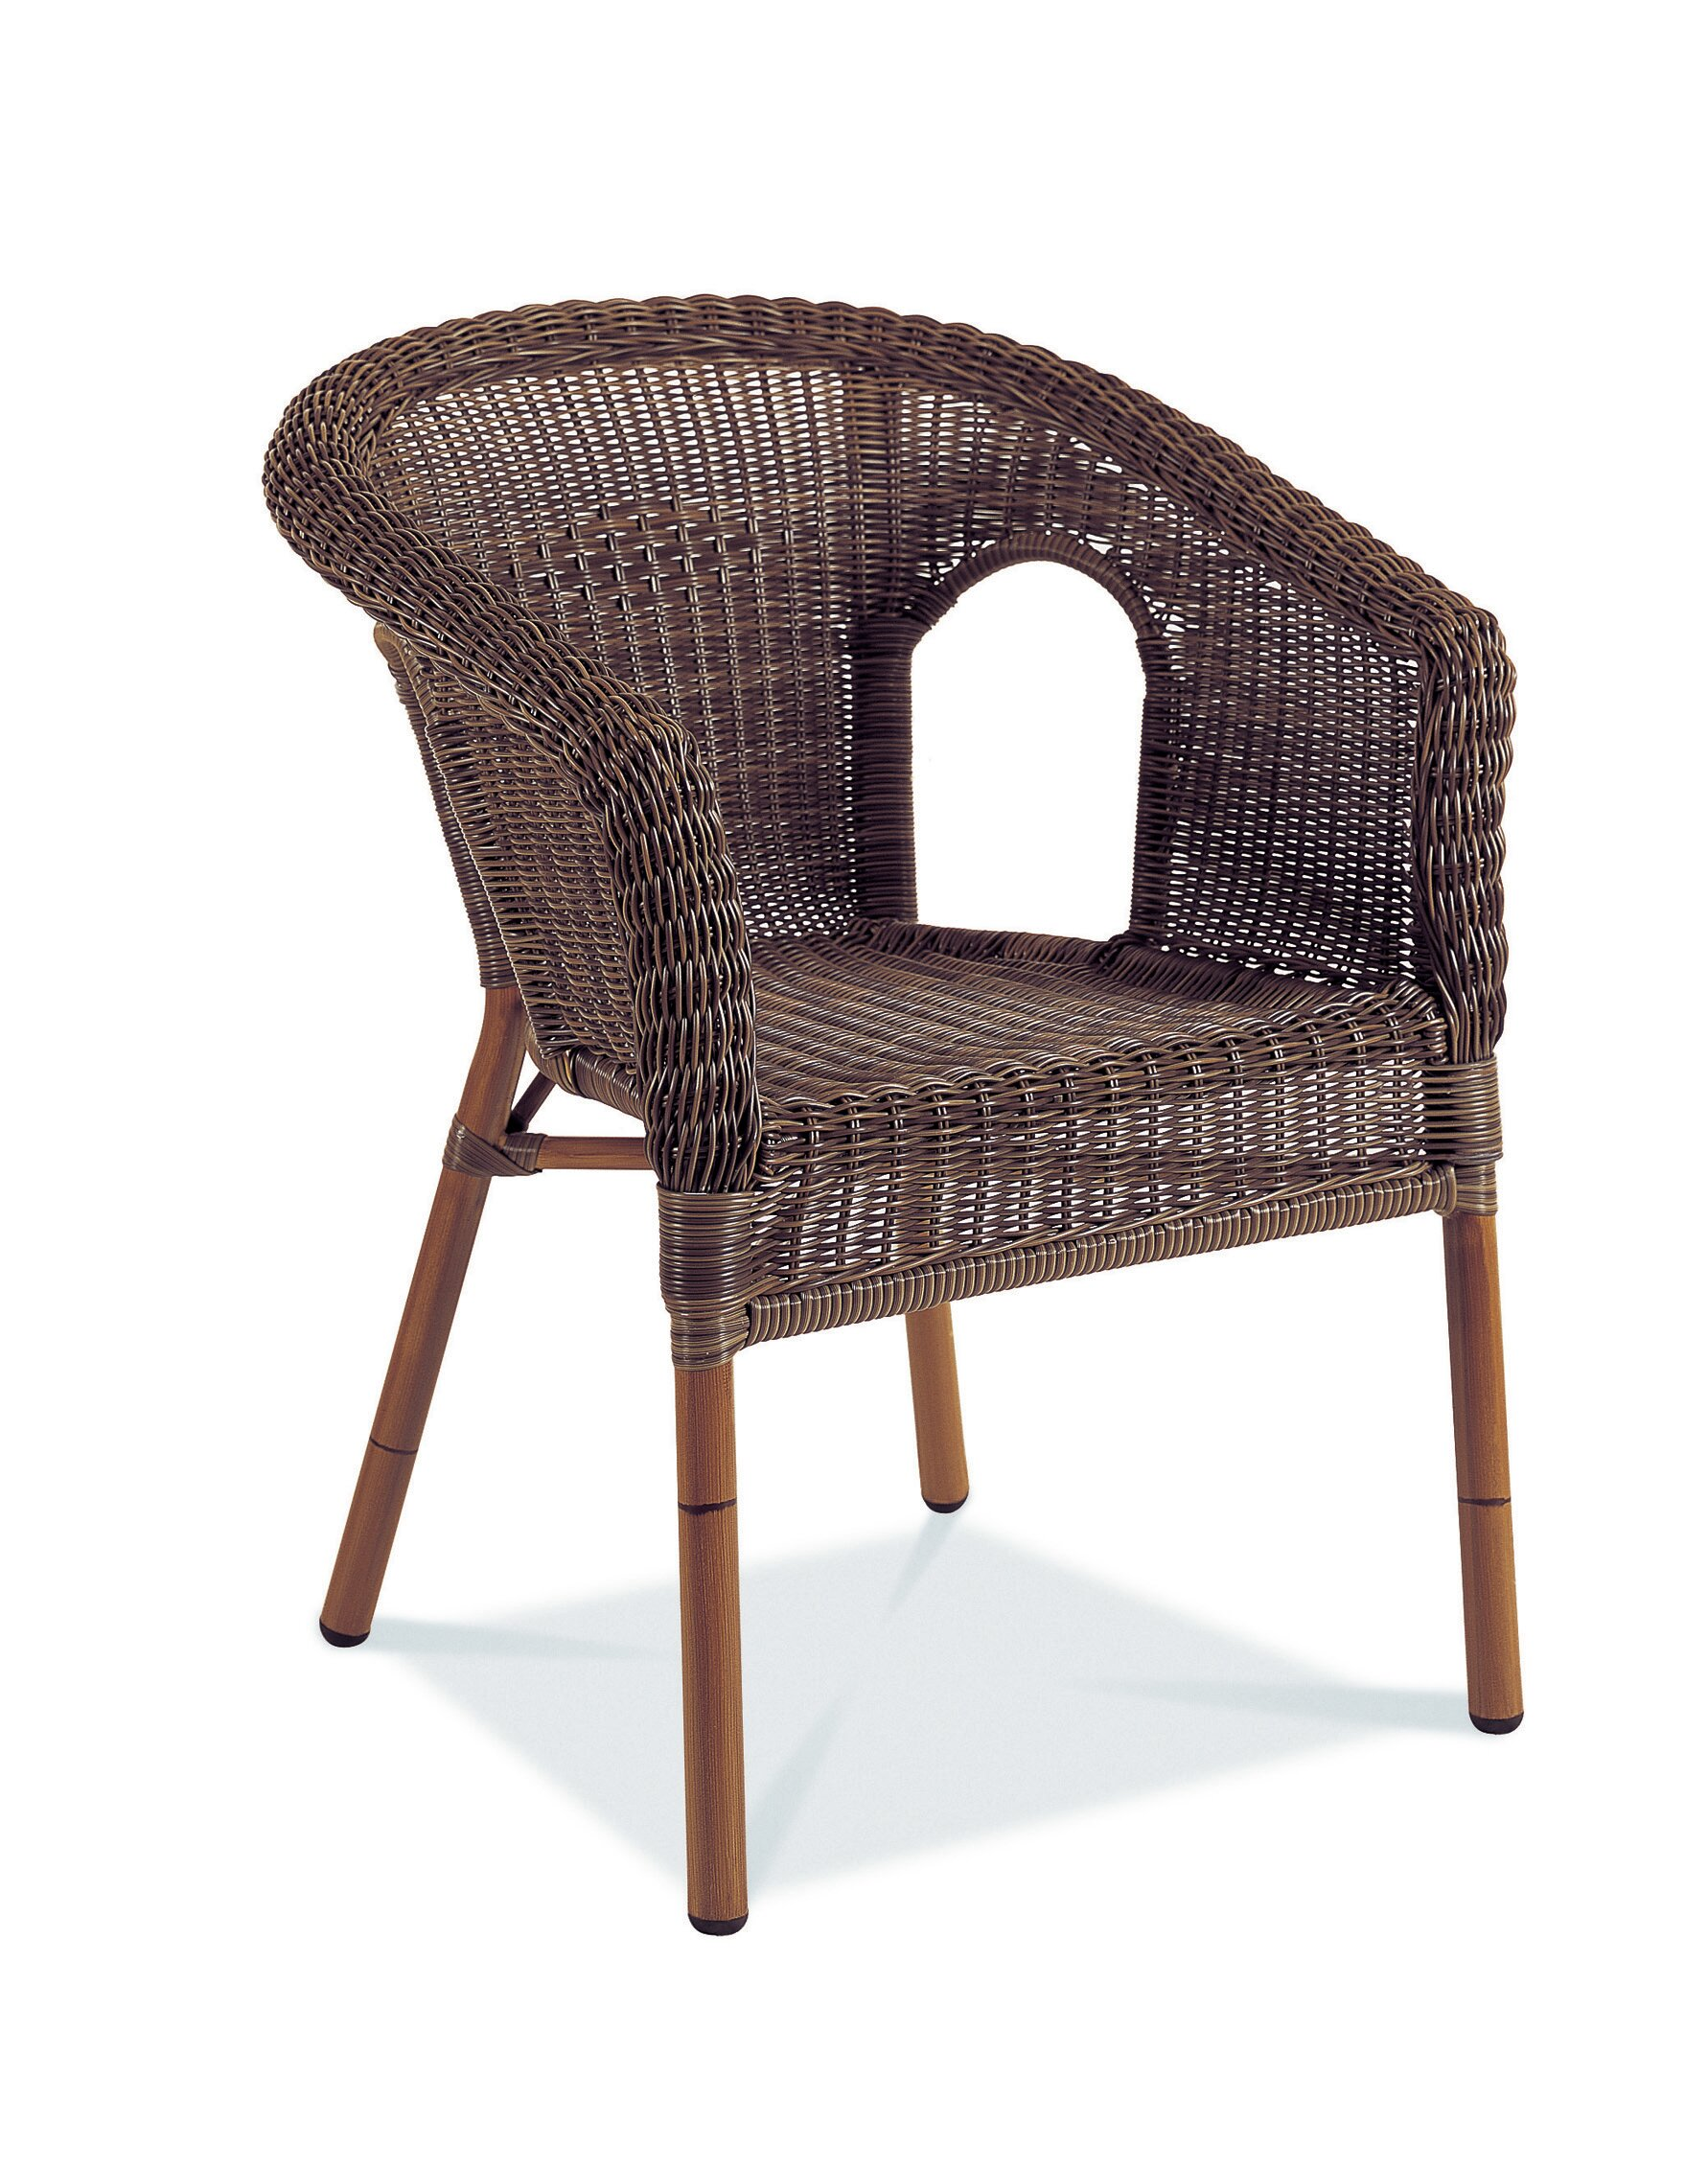 Savannah Stacking Patio Dining Chair